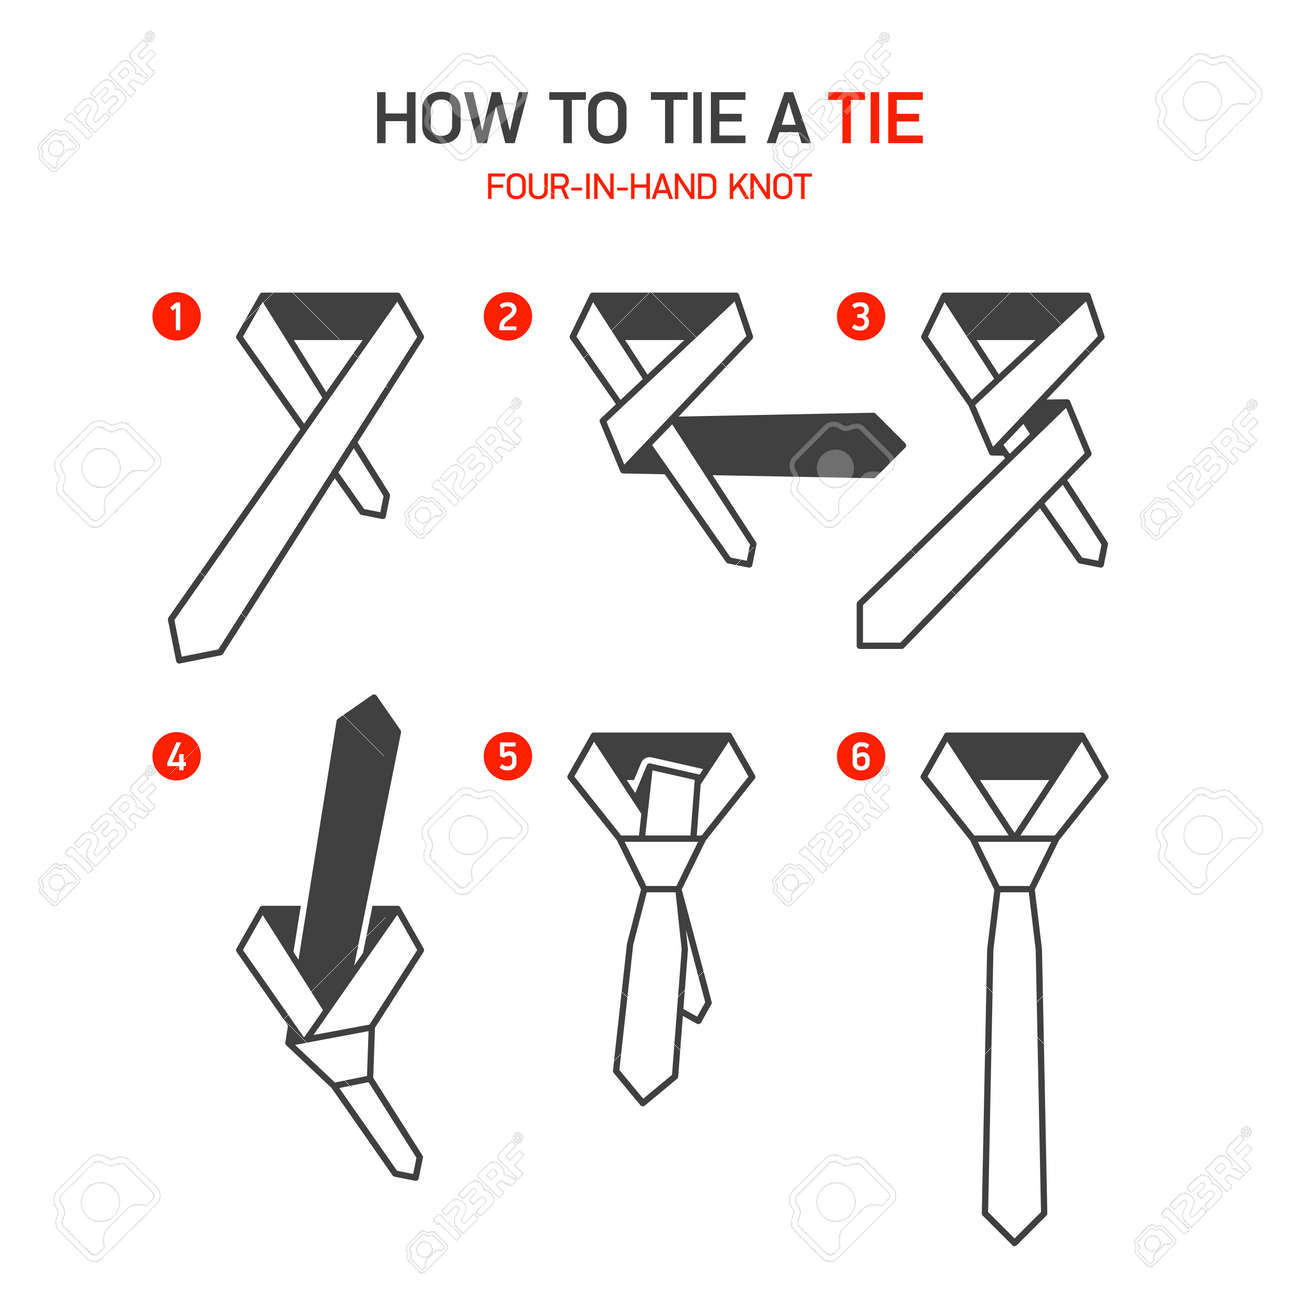 How To Tie A Tie Instructions, Fourinhand Knot Stock Vector